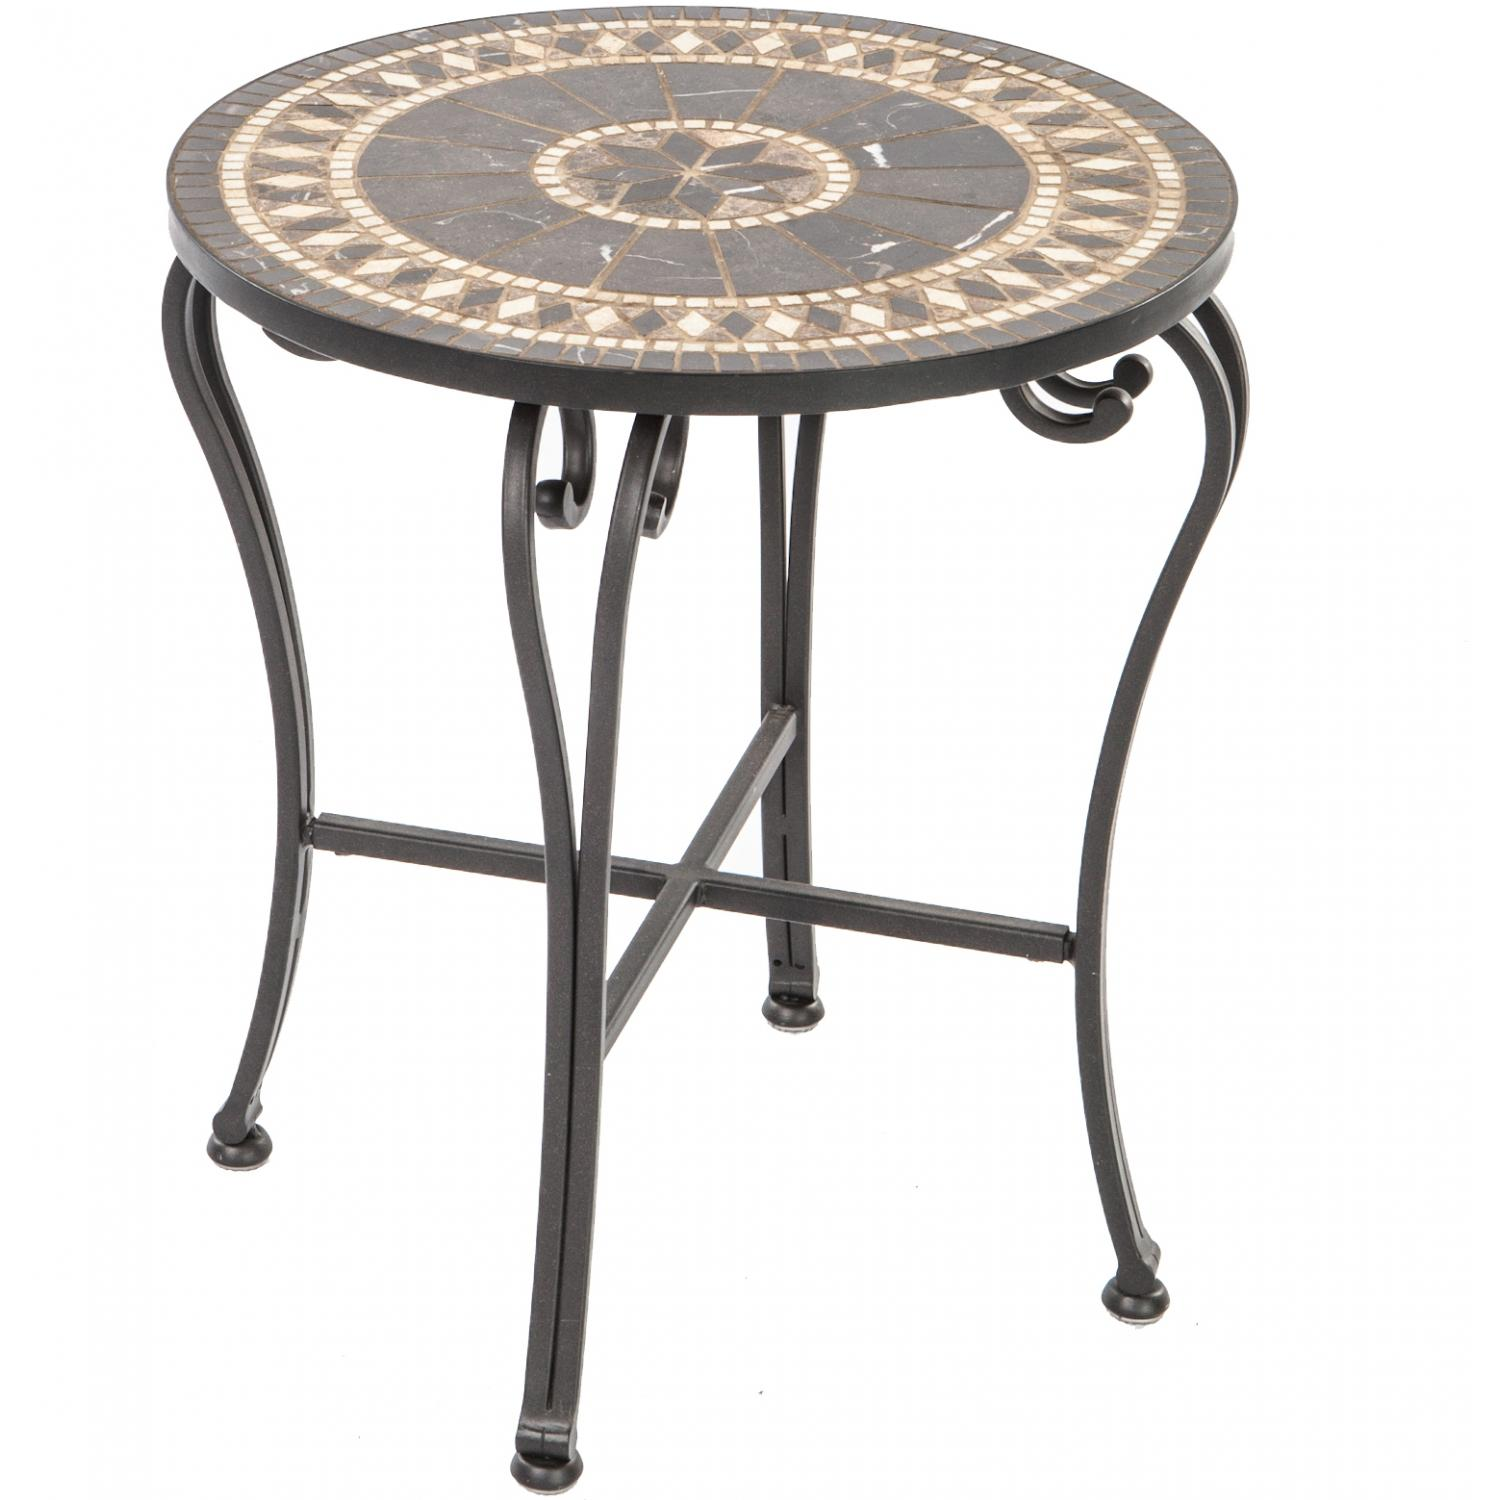 Alfresco Home Gibraltar Mosaic Side Table at Sears.com